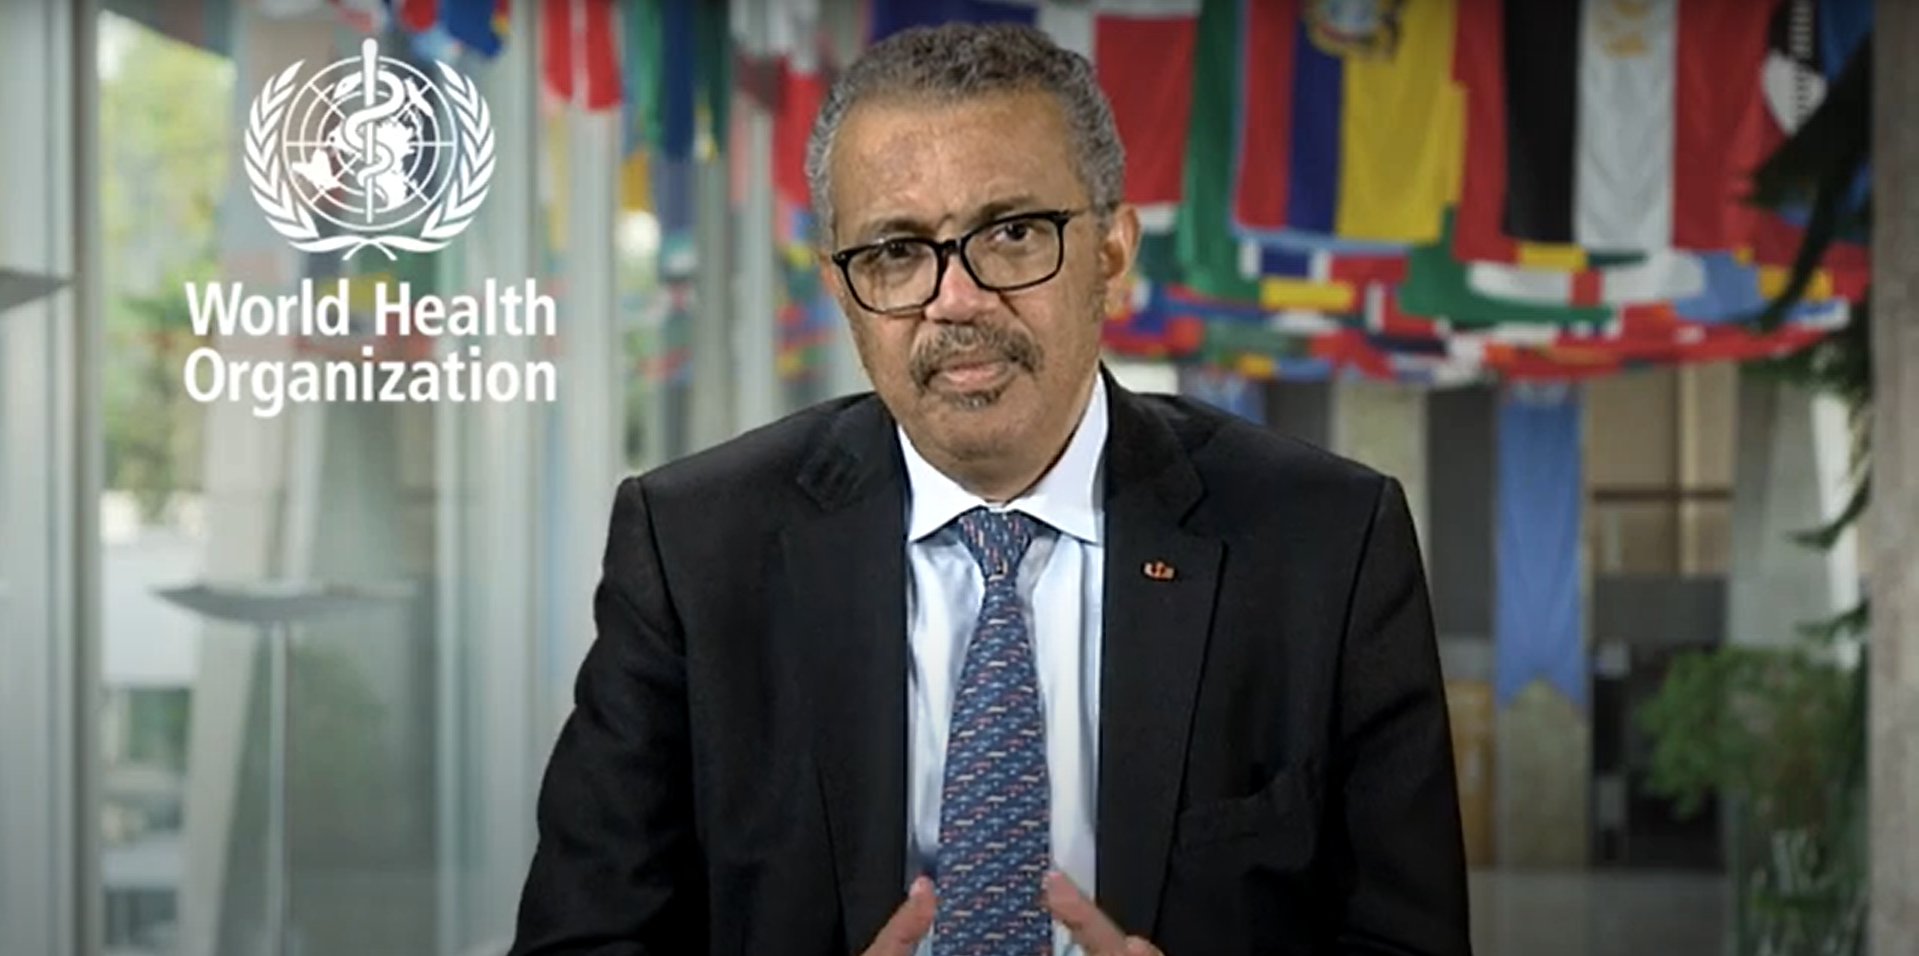 Dr Tedros Adhanom Ghebreyesus, Director-General of WHO welcomes the opening of The Trinity Challenge